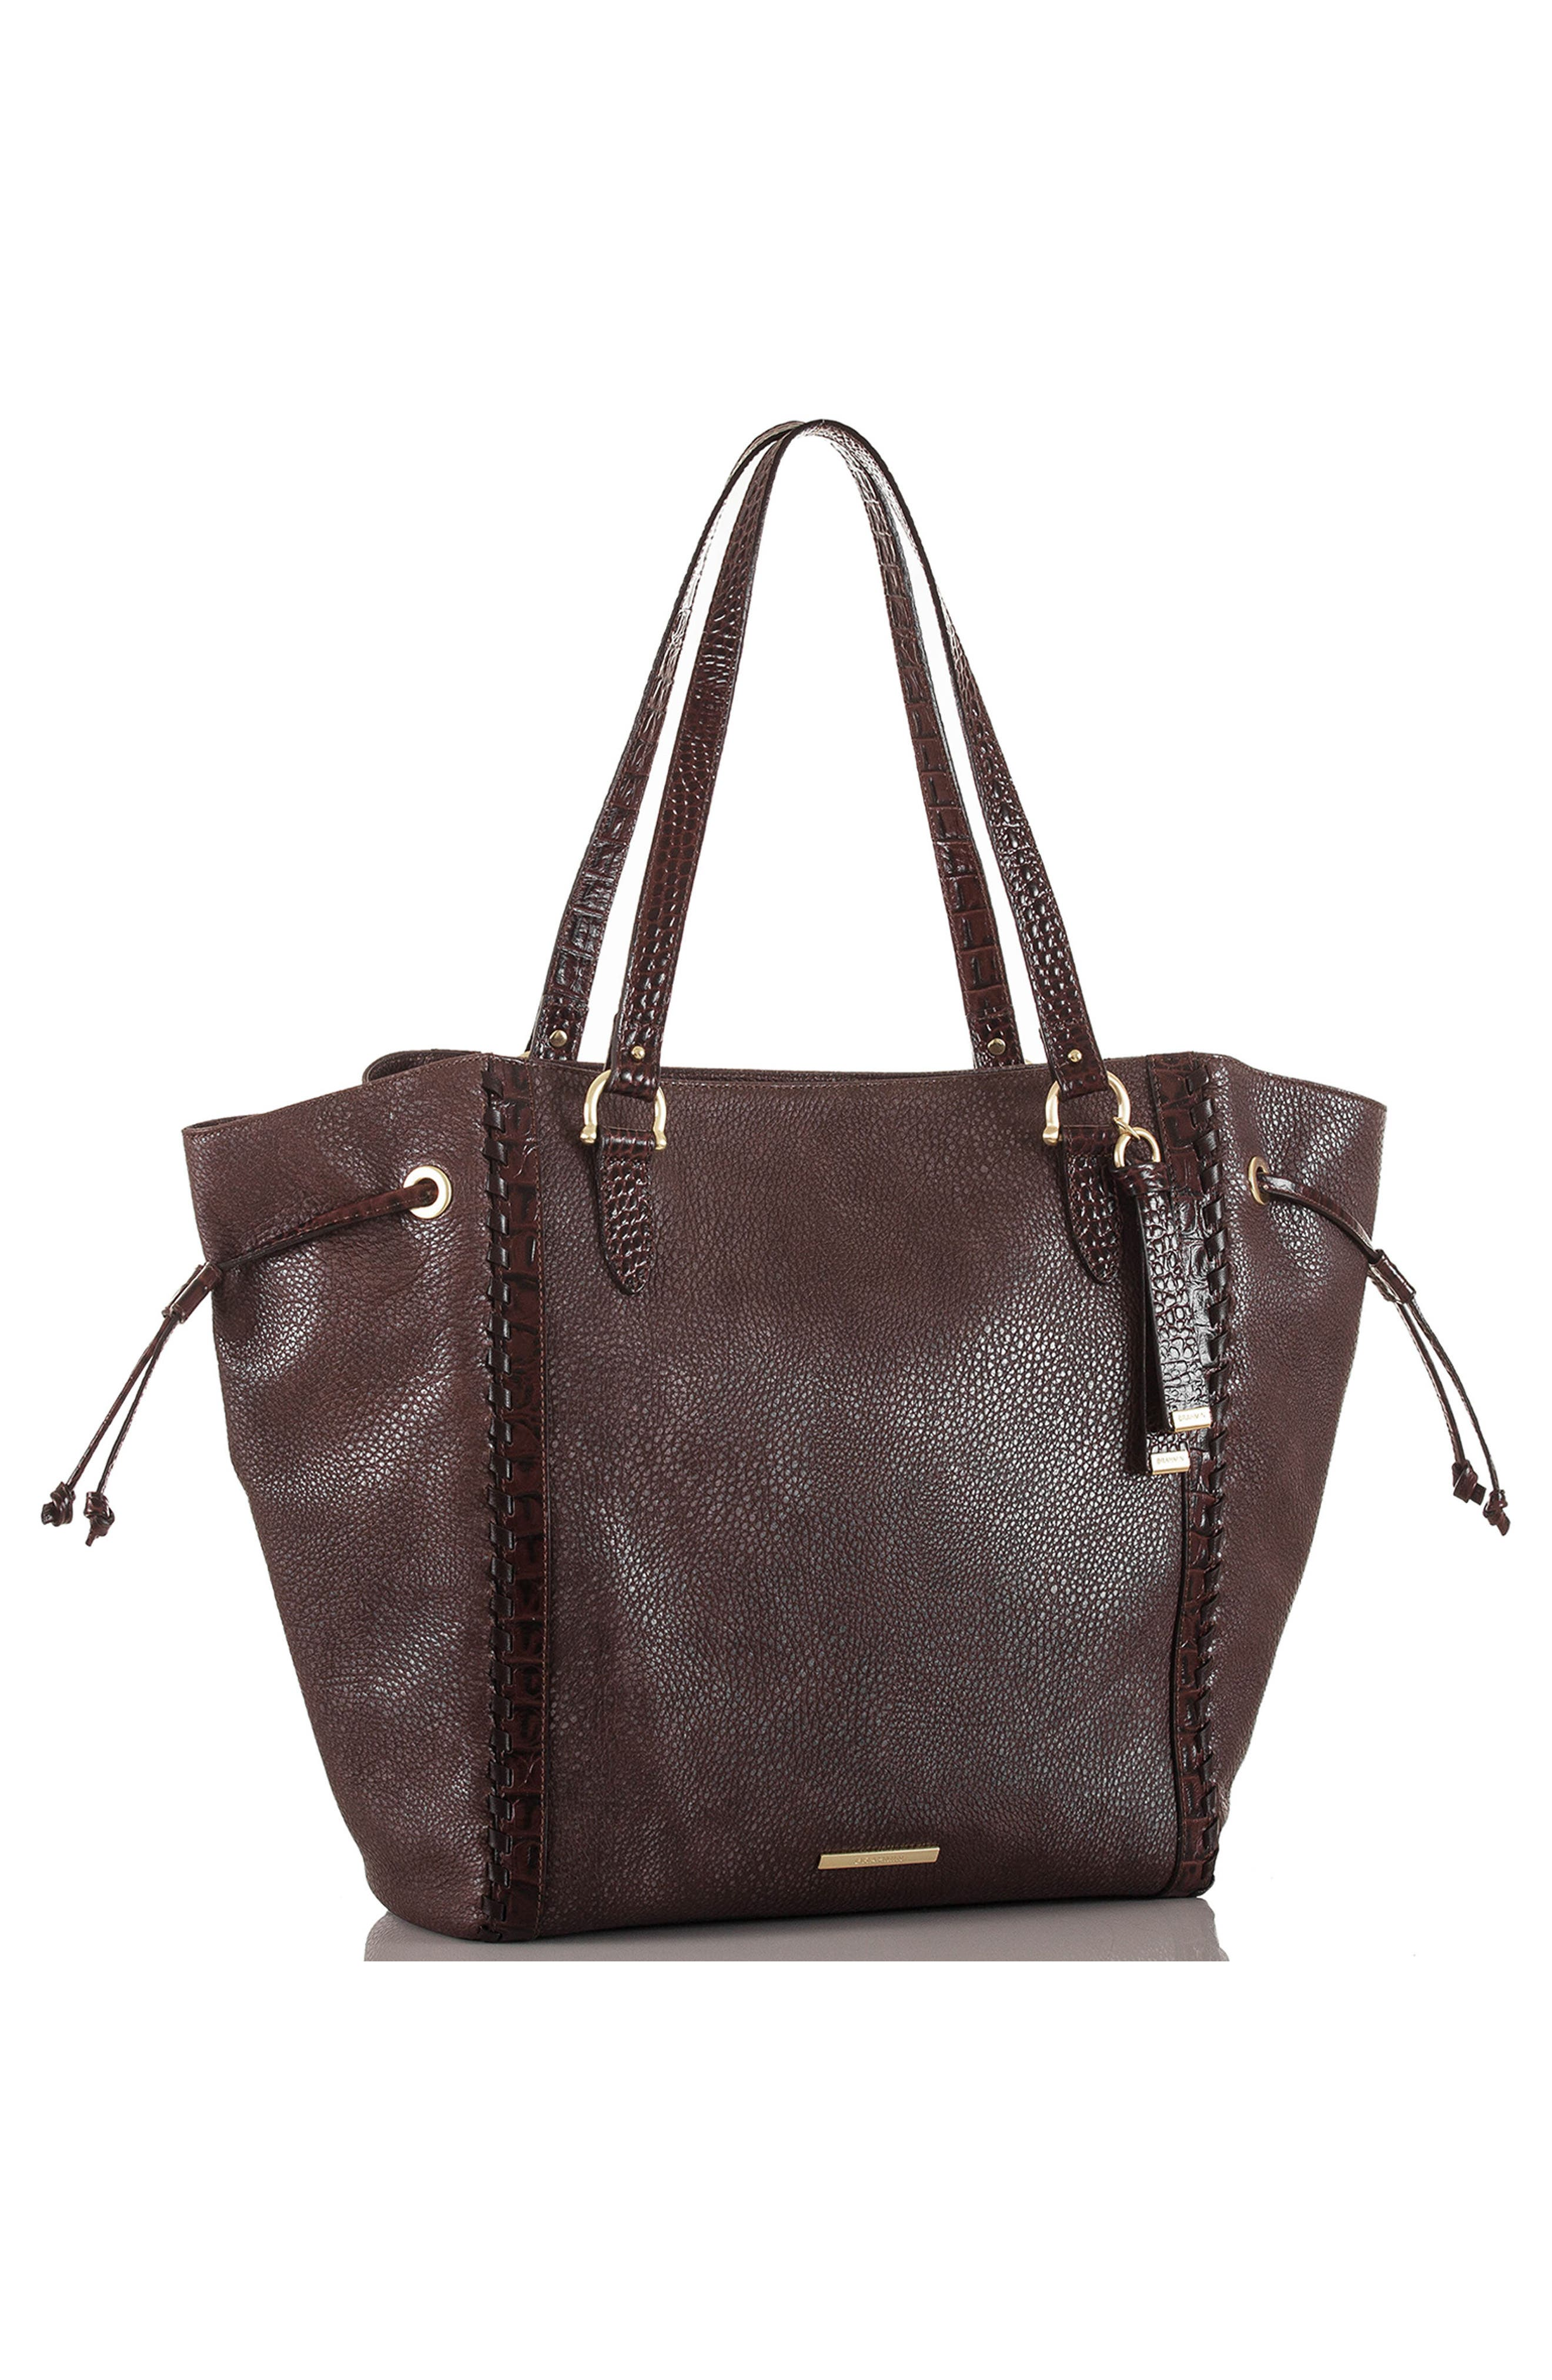 Southcoast Cheyenne Leather Tote,                             Alternate thumbnail 4, color,                             200